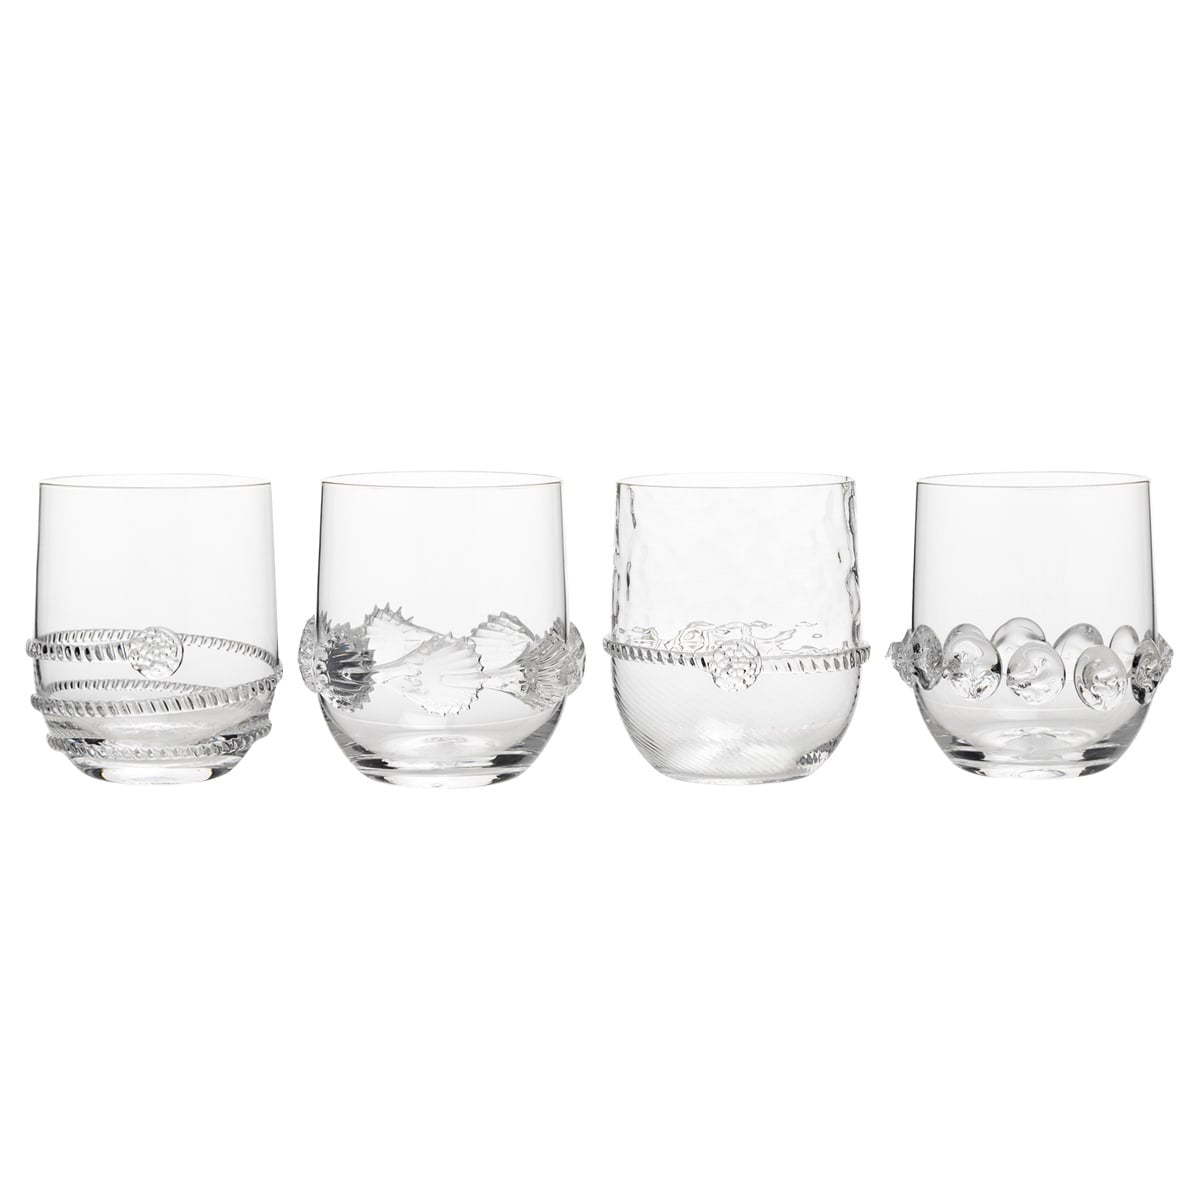 Heritage Collectors Set of Tumblers